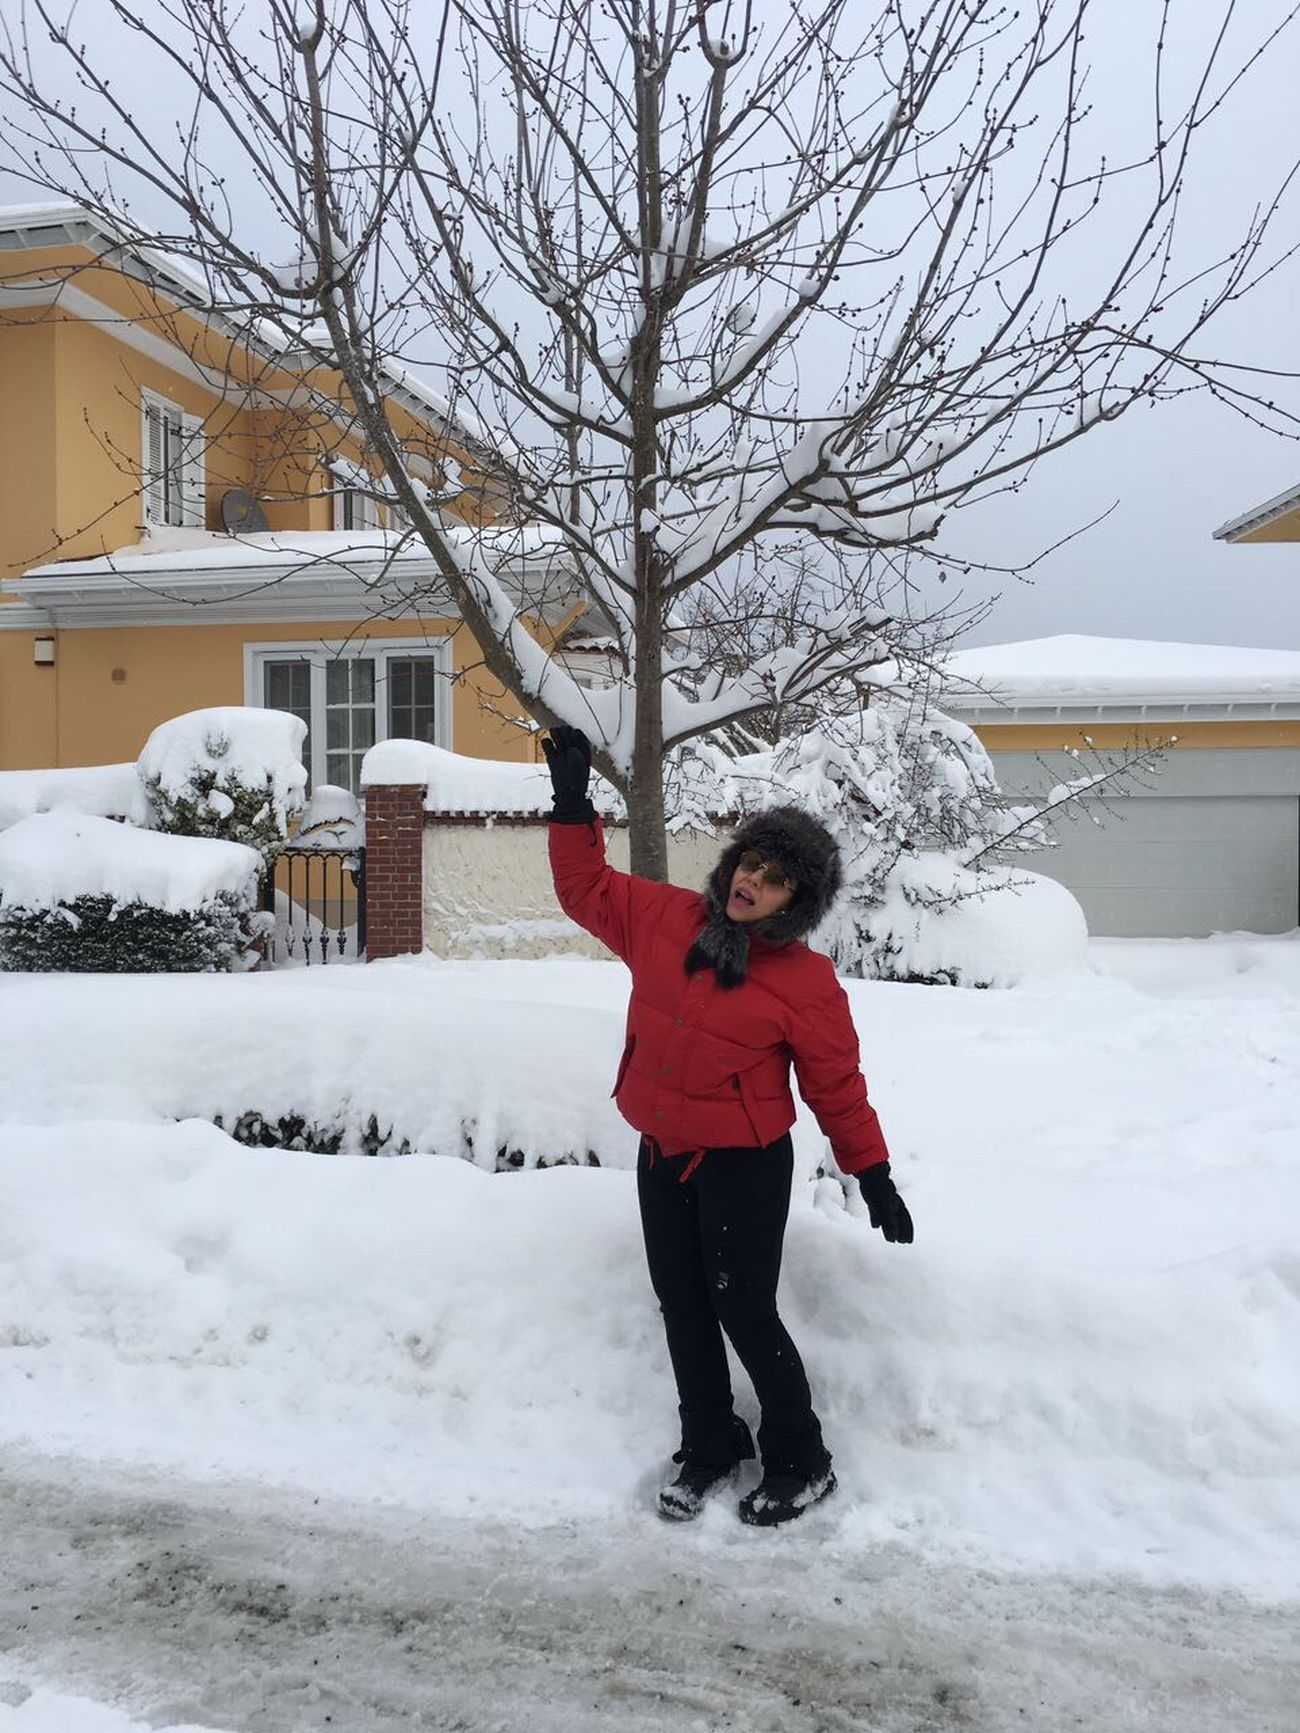 Winter Snow Tree House Happiness Smile Enjoying Life Hello World Relaxing Walking Around That's Me